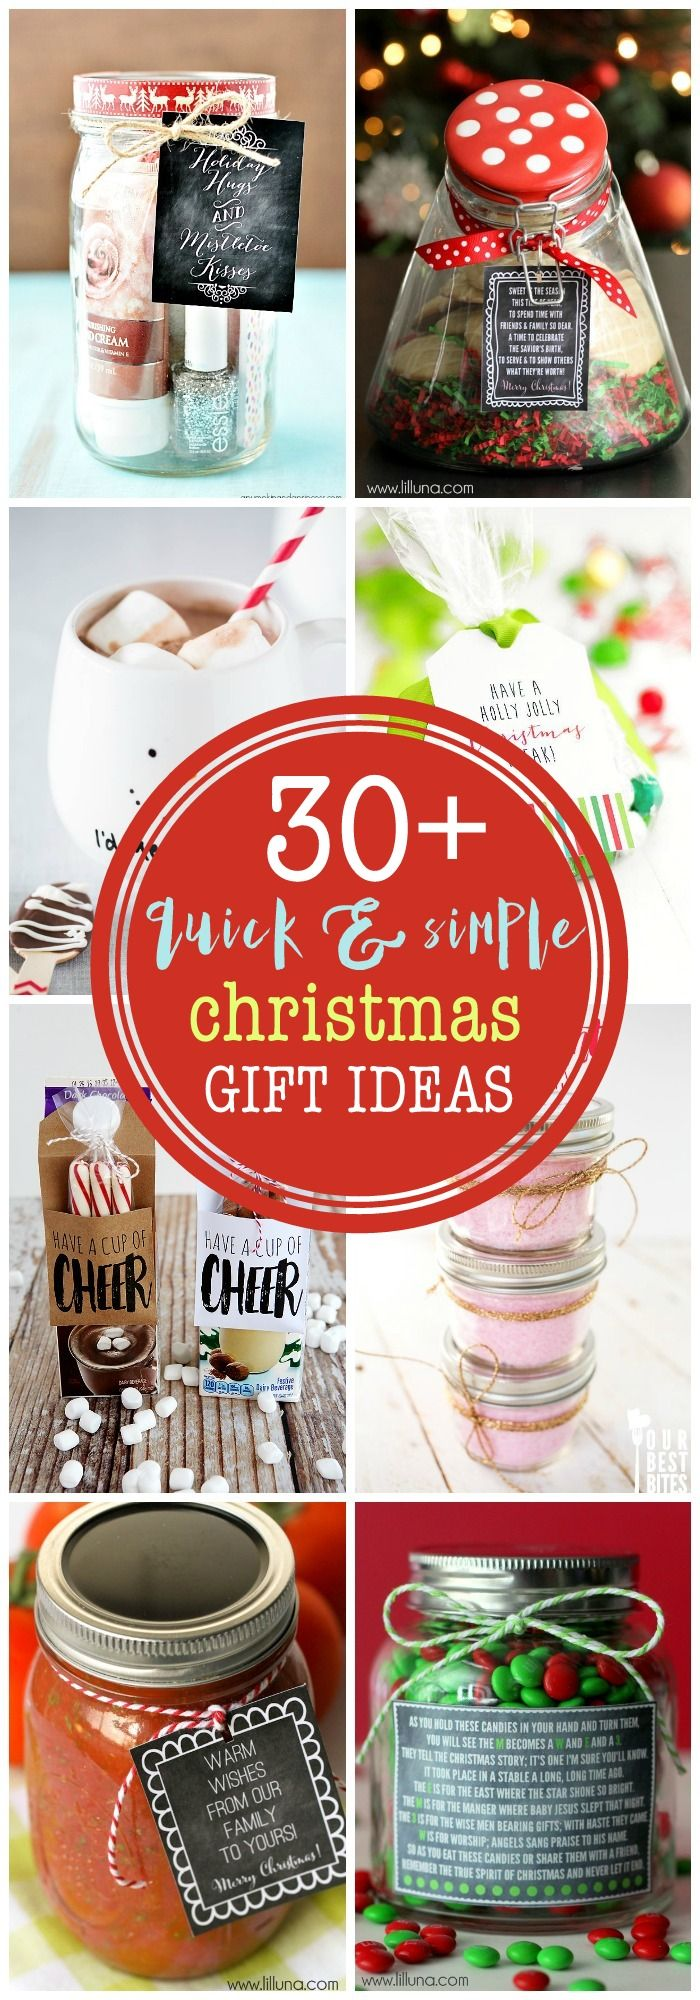 DIY Gifts : Need some last minute gift ideas that are cute and ...